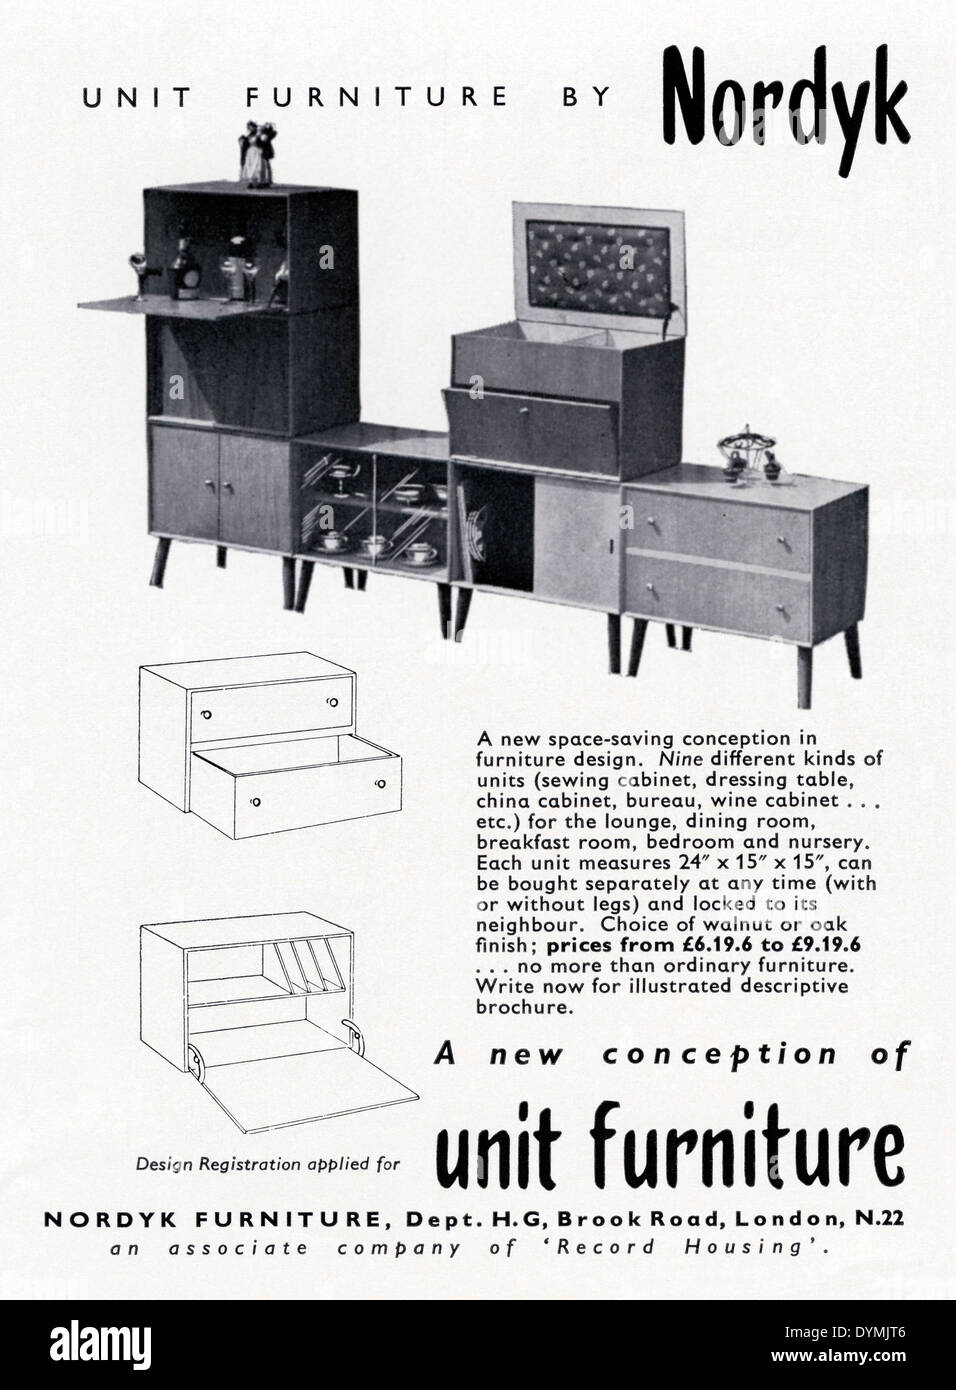 Old advert for Nordyk 'unit' furniture - Scandinavian influenced modular cabinets. The advert appeared in a magazine in 1956 - Stock Image